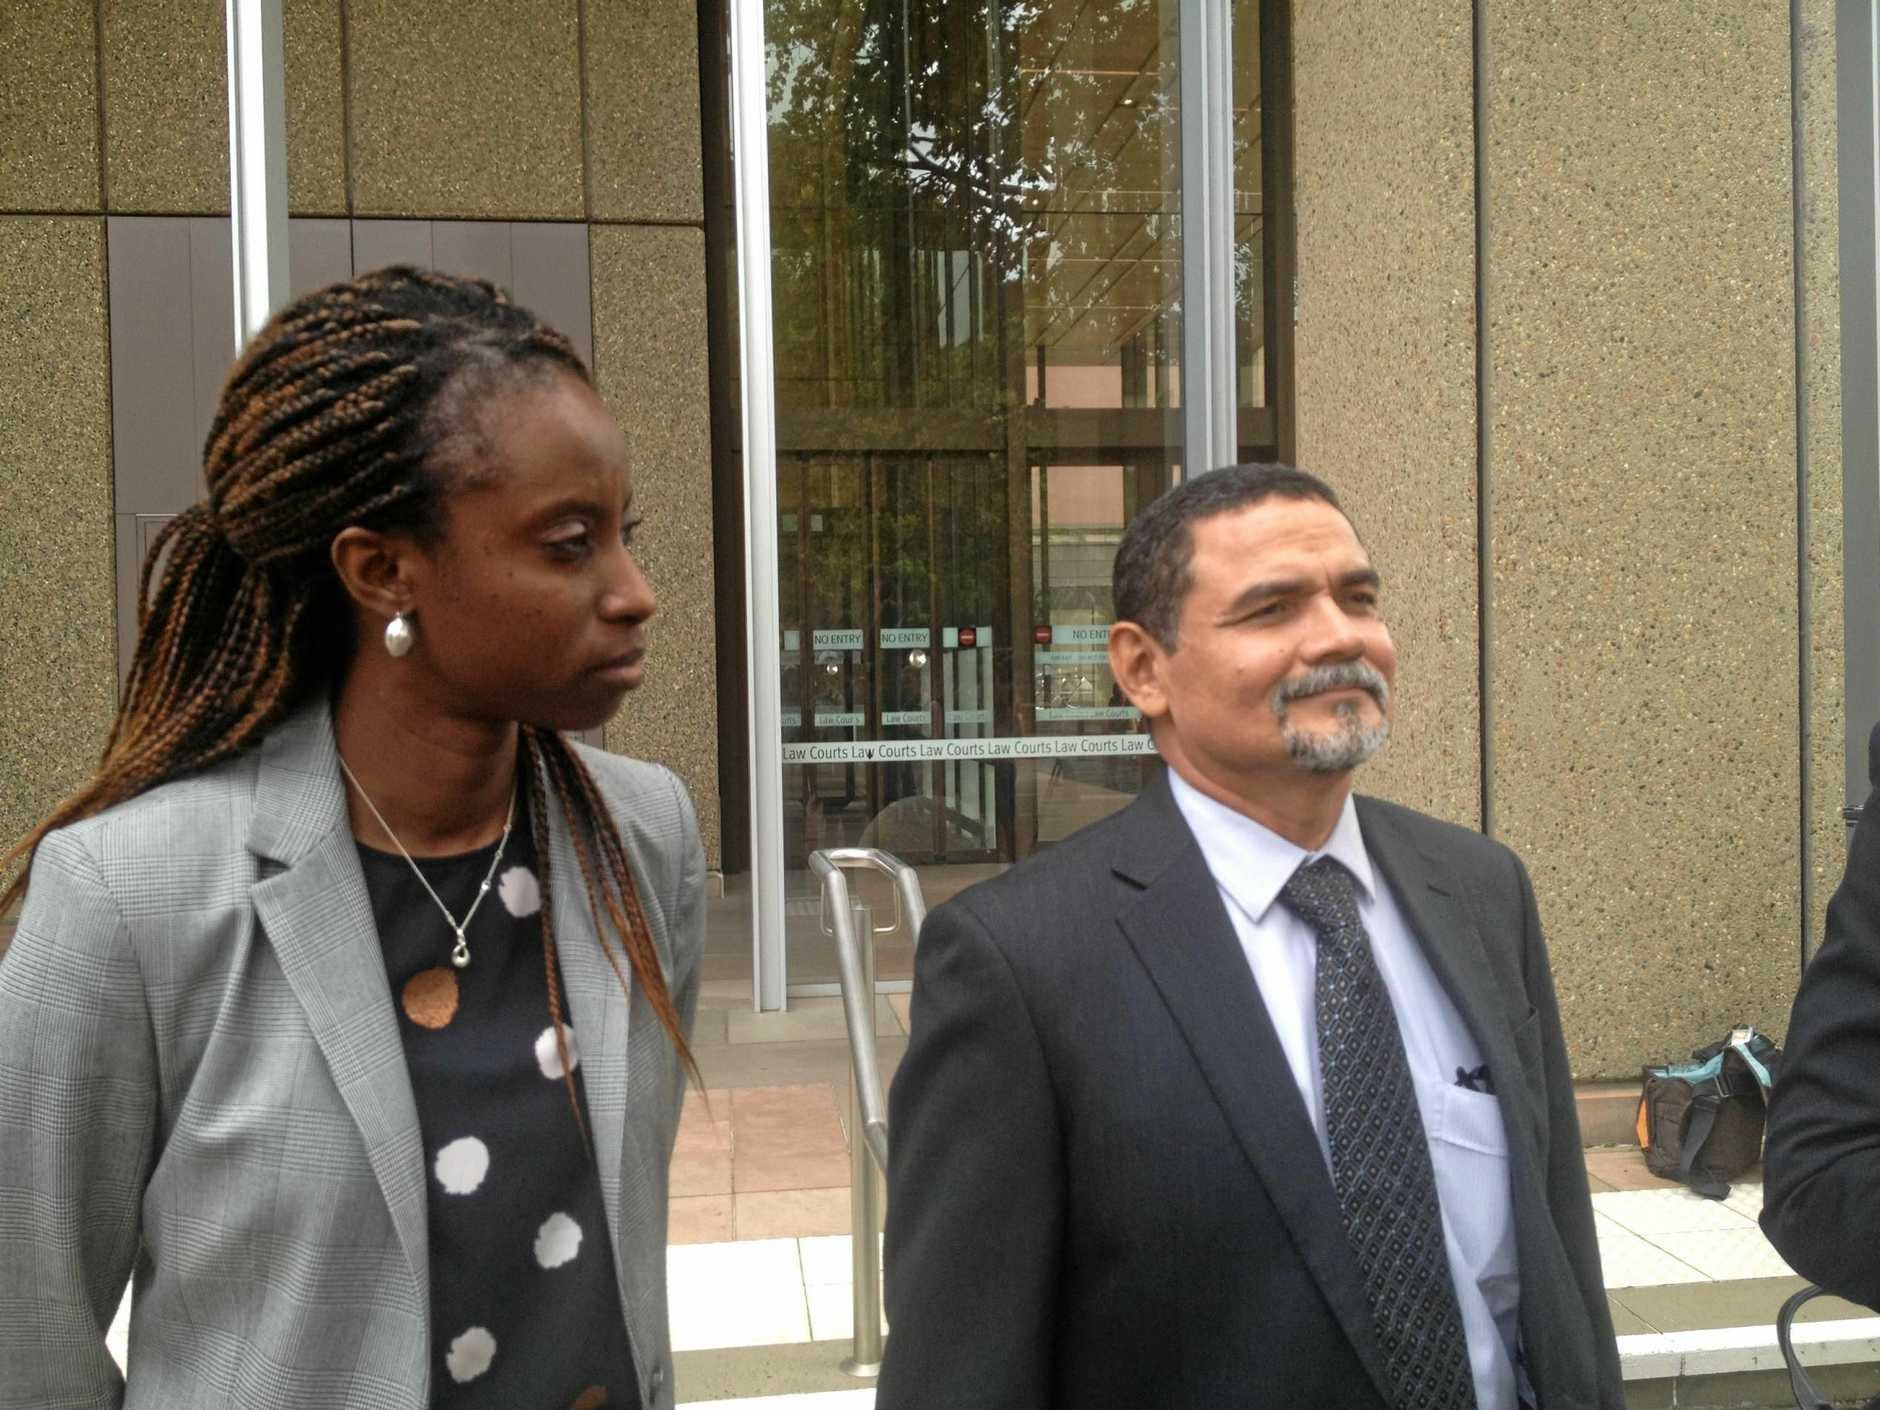 Maurice Blackburn principal Vavaa Mawuli and lead claimant, Fairfield Garden's sports shop owner Vince Rodriguez, outside NSW Supreme Court. They are involved in the class action related to the 2011 floods in south-east Queensland.